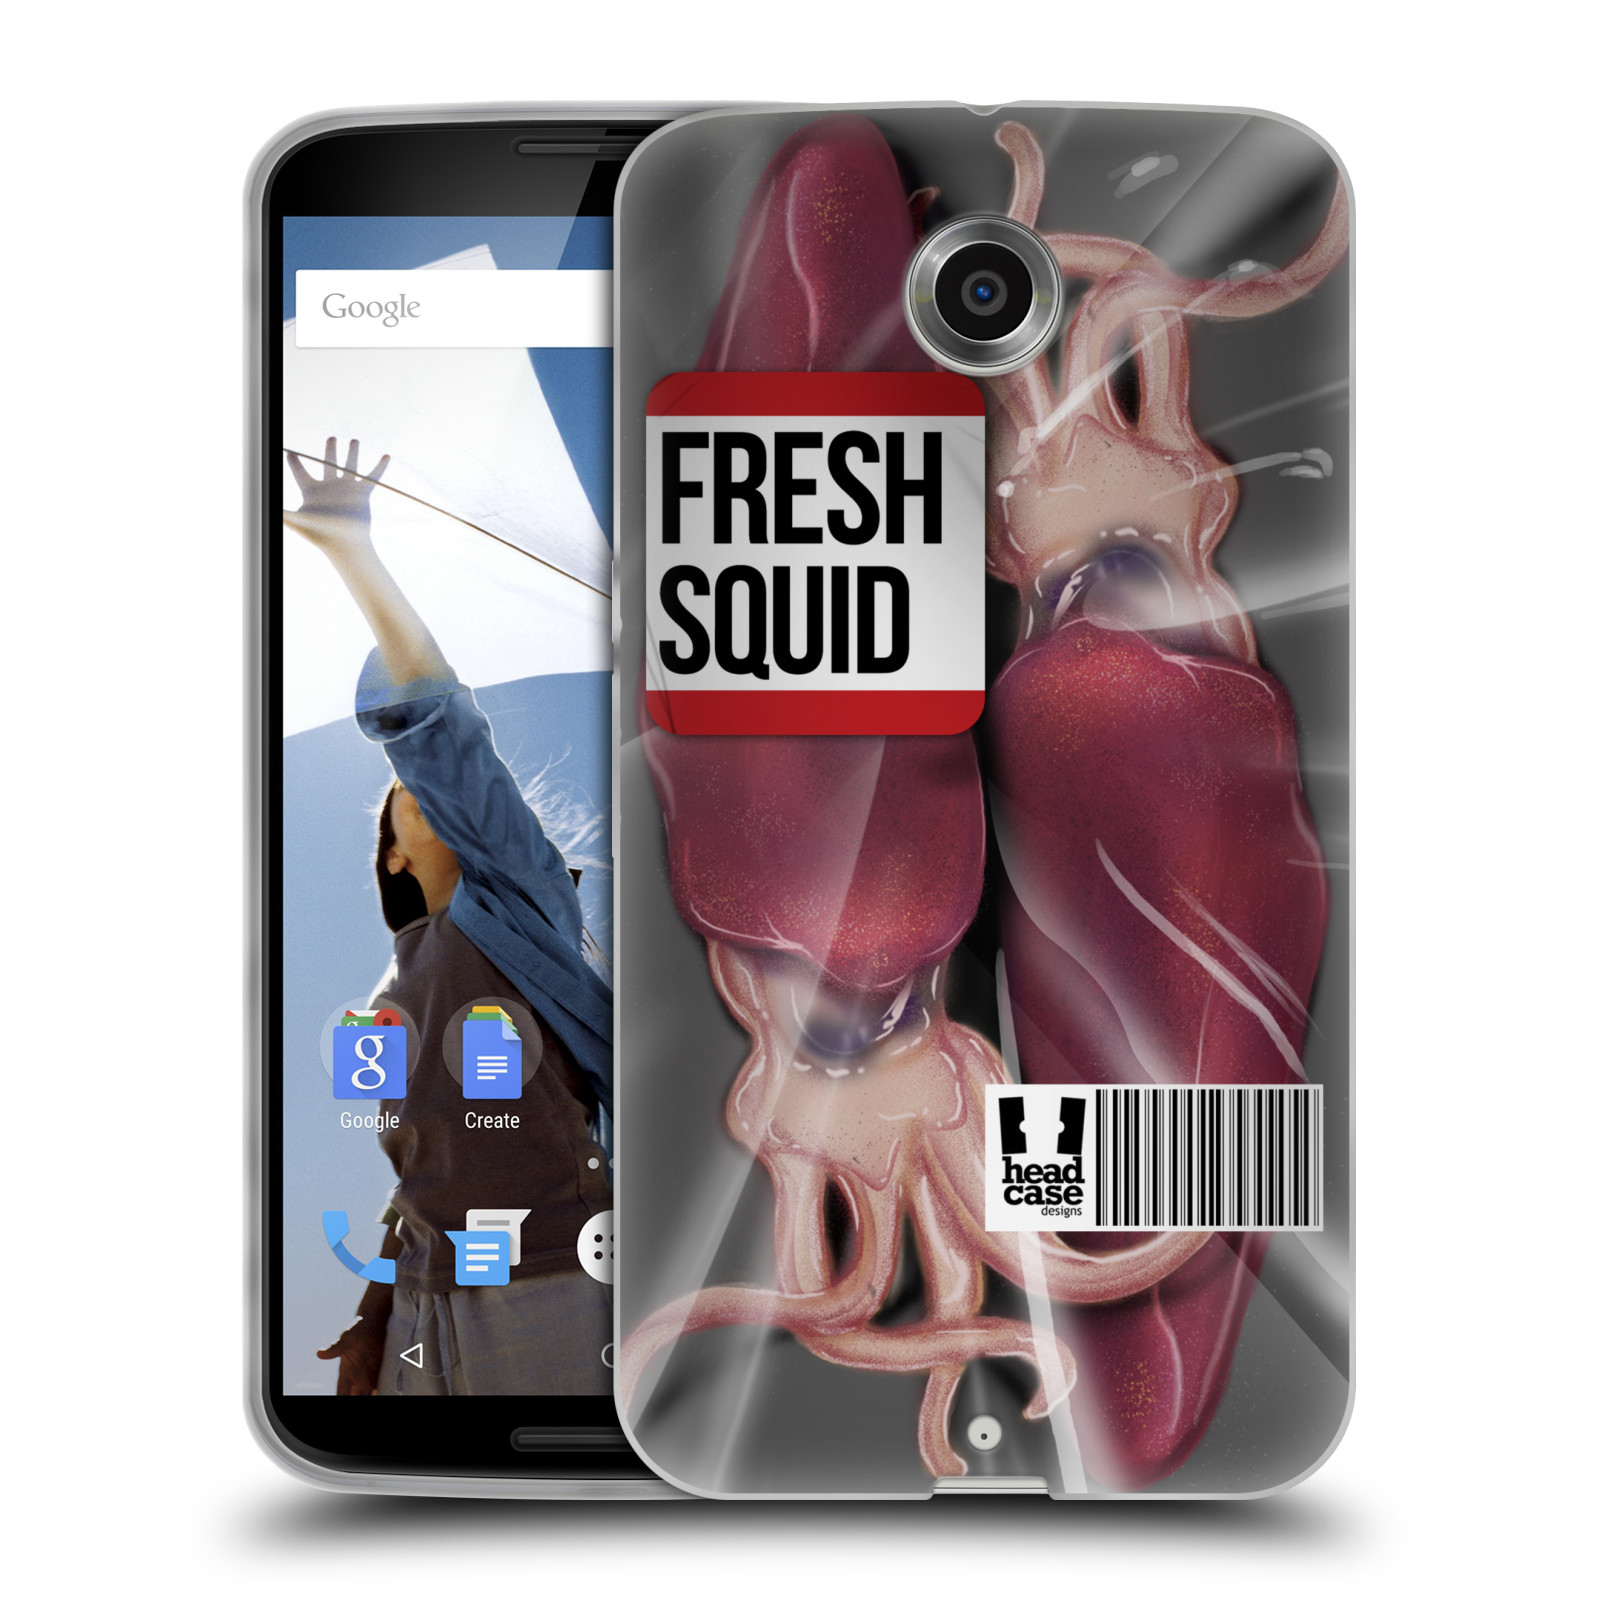 HEAD-CASE-DESIGNS-ROHES-FLEISCH-SOFT-GEL-HULLE-FUR-MOTOROLA-HANDYS